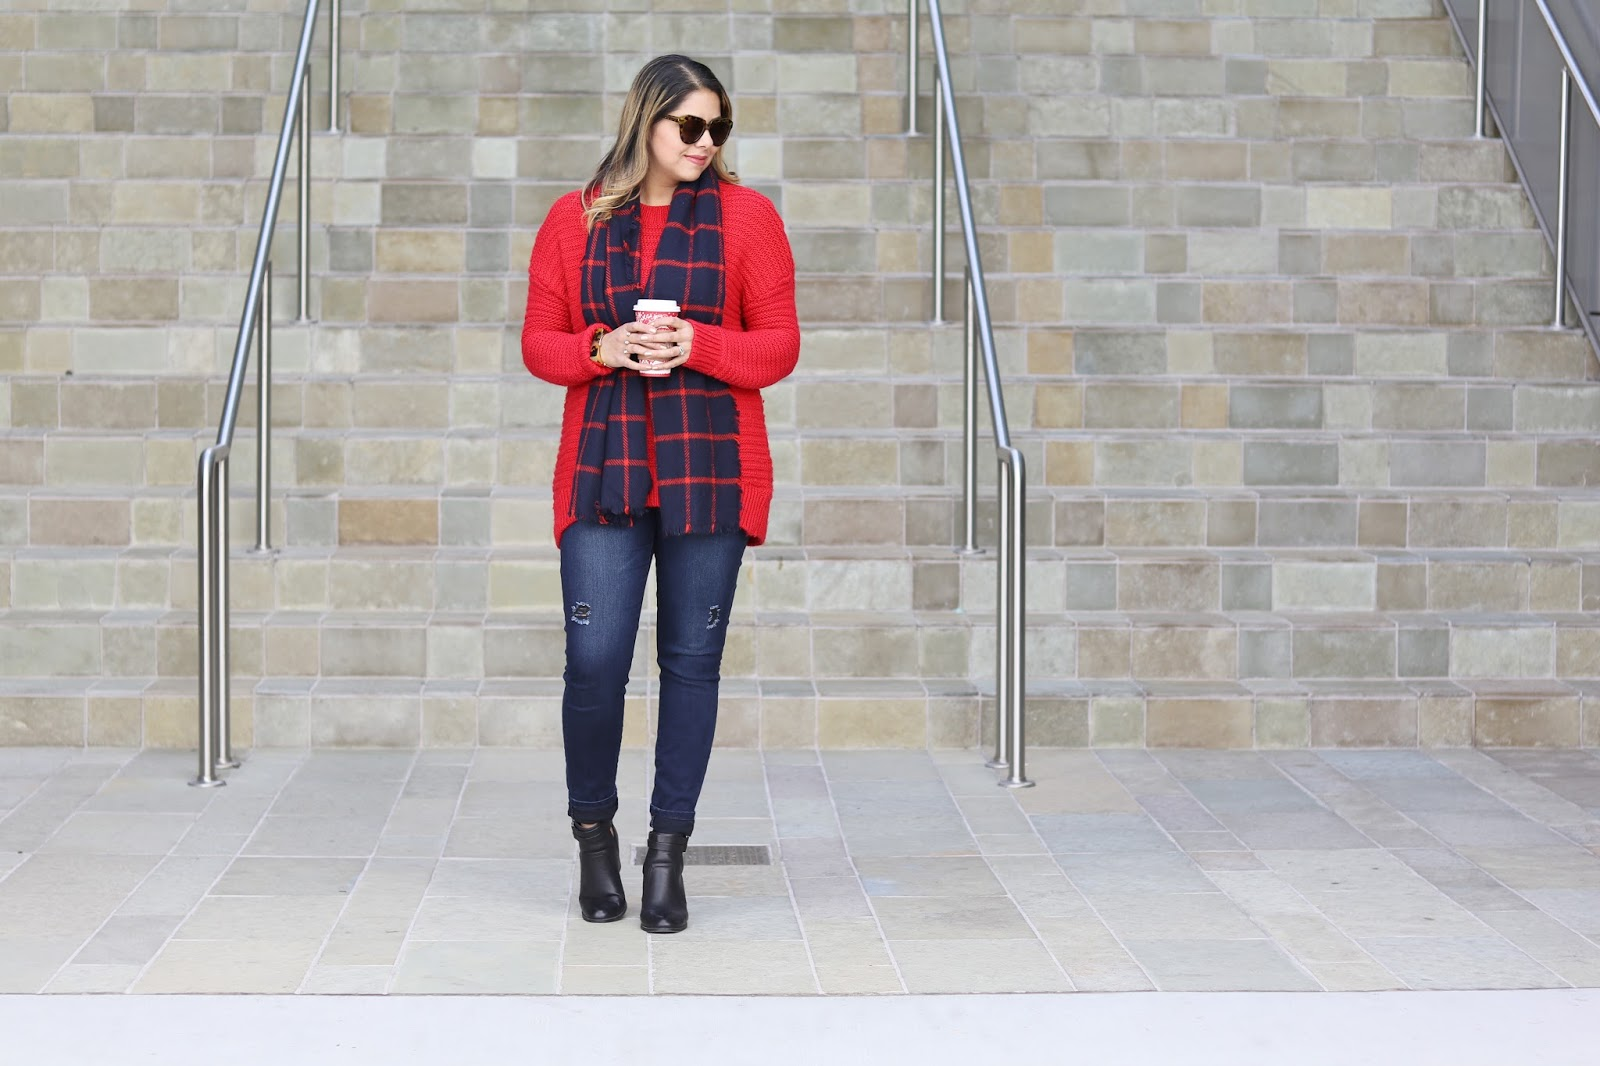 touch of plaid outfit, cute cozy outfit, winter 2016 outfit